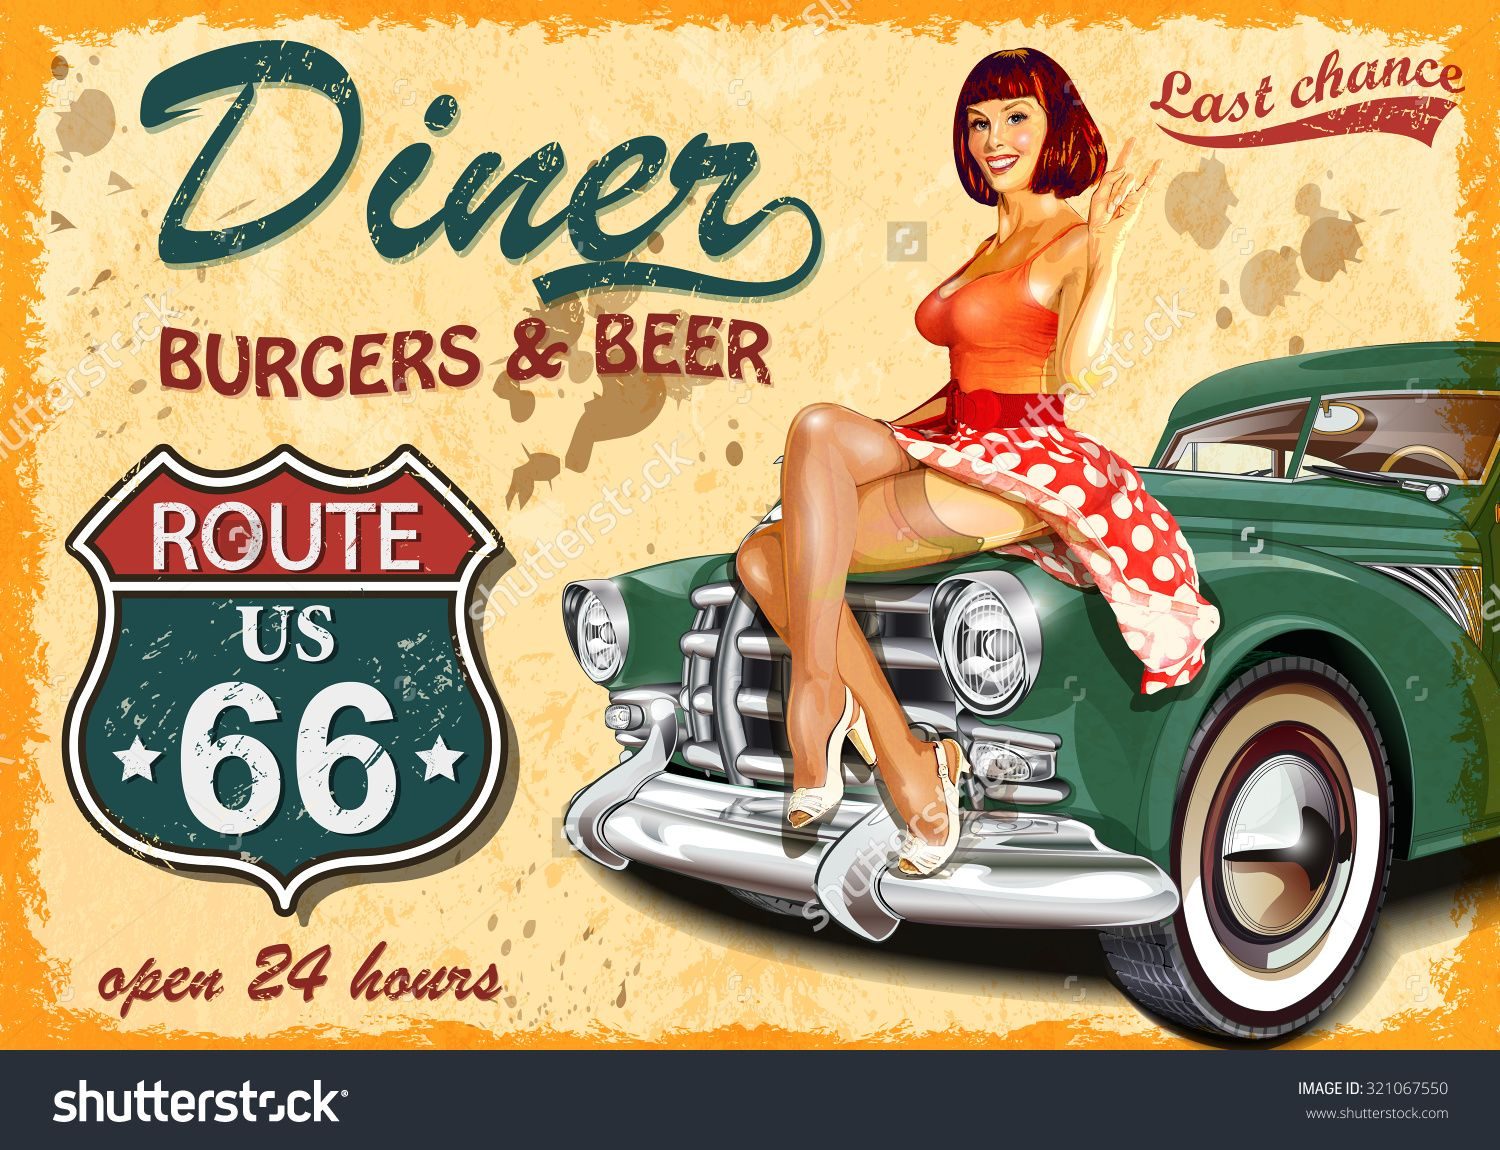 Diner Route 66 Vintage Poster Stock Vector Illustration ...